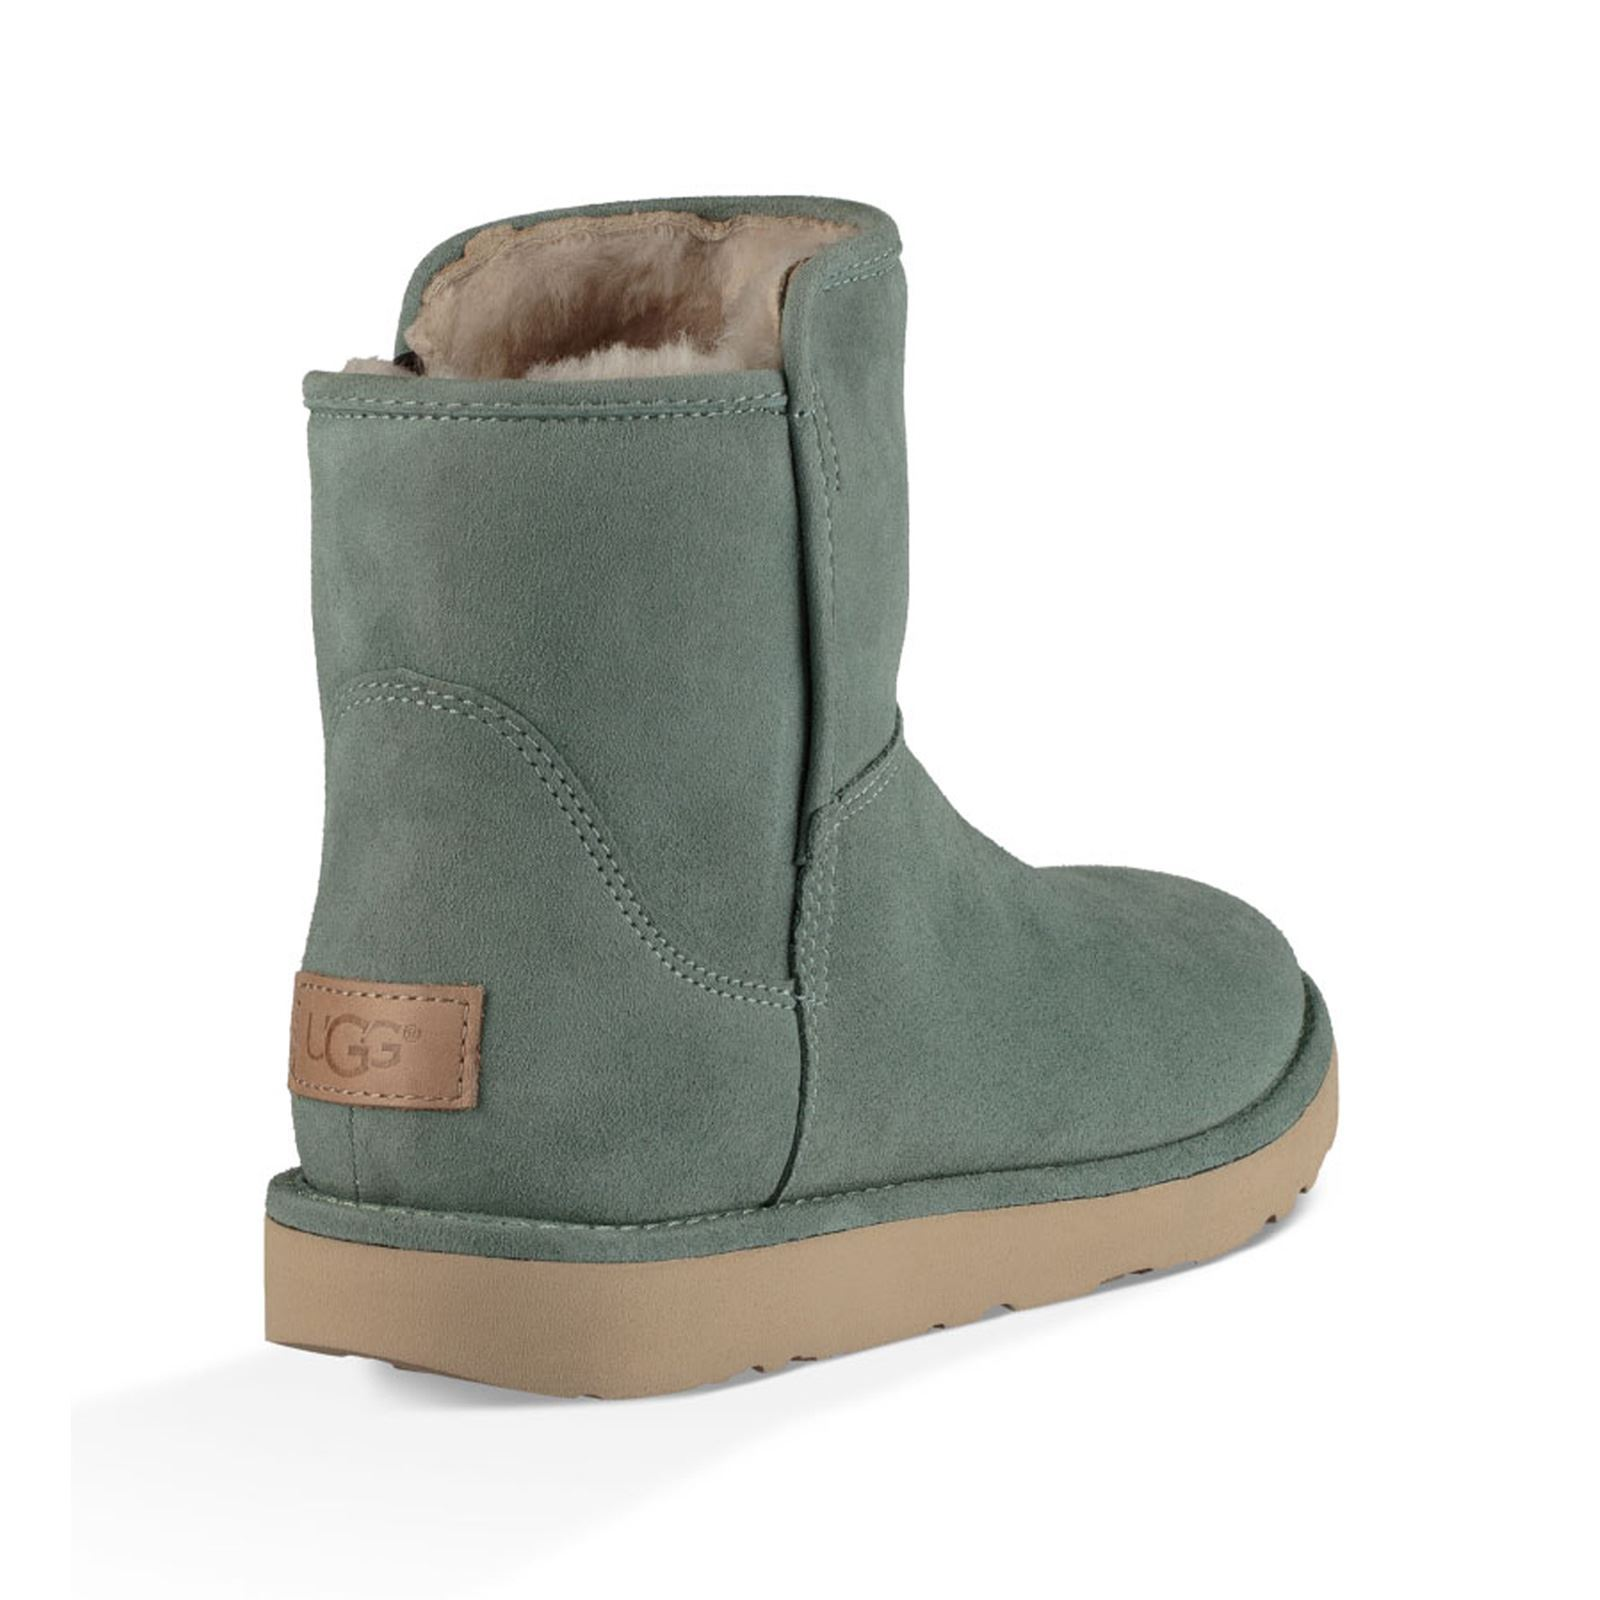 Ugg Abree Short - Boots fourrées en cuir suédé - marron clair Breyer Traditional Shipping Set by Breyer CHIRUCA Botas Xacobeo 05 - Gris oI7VZ1cs